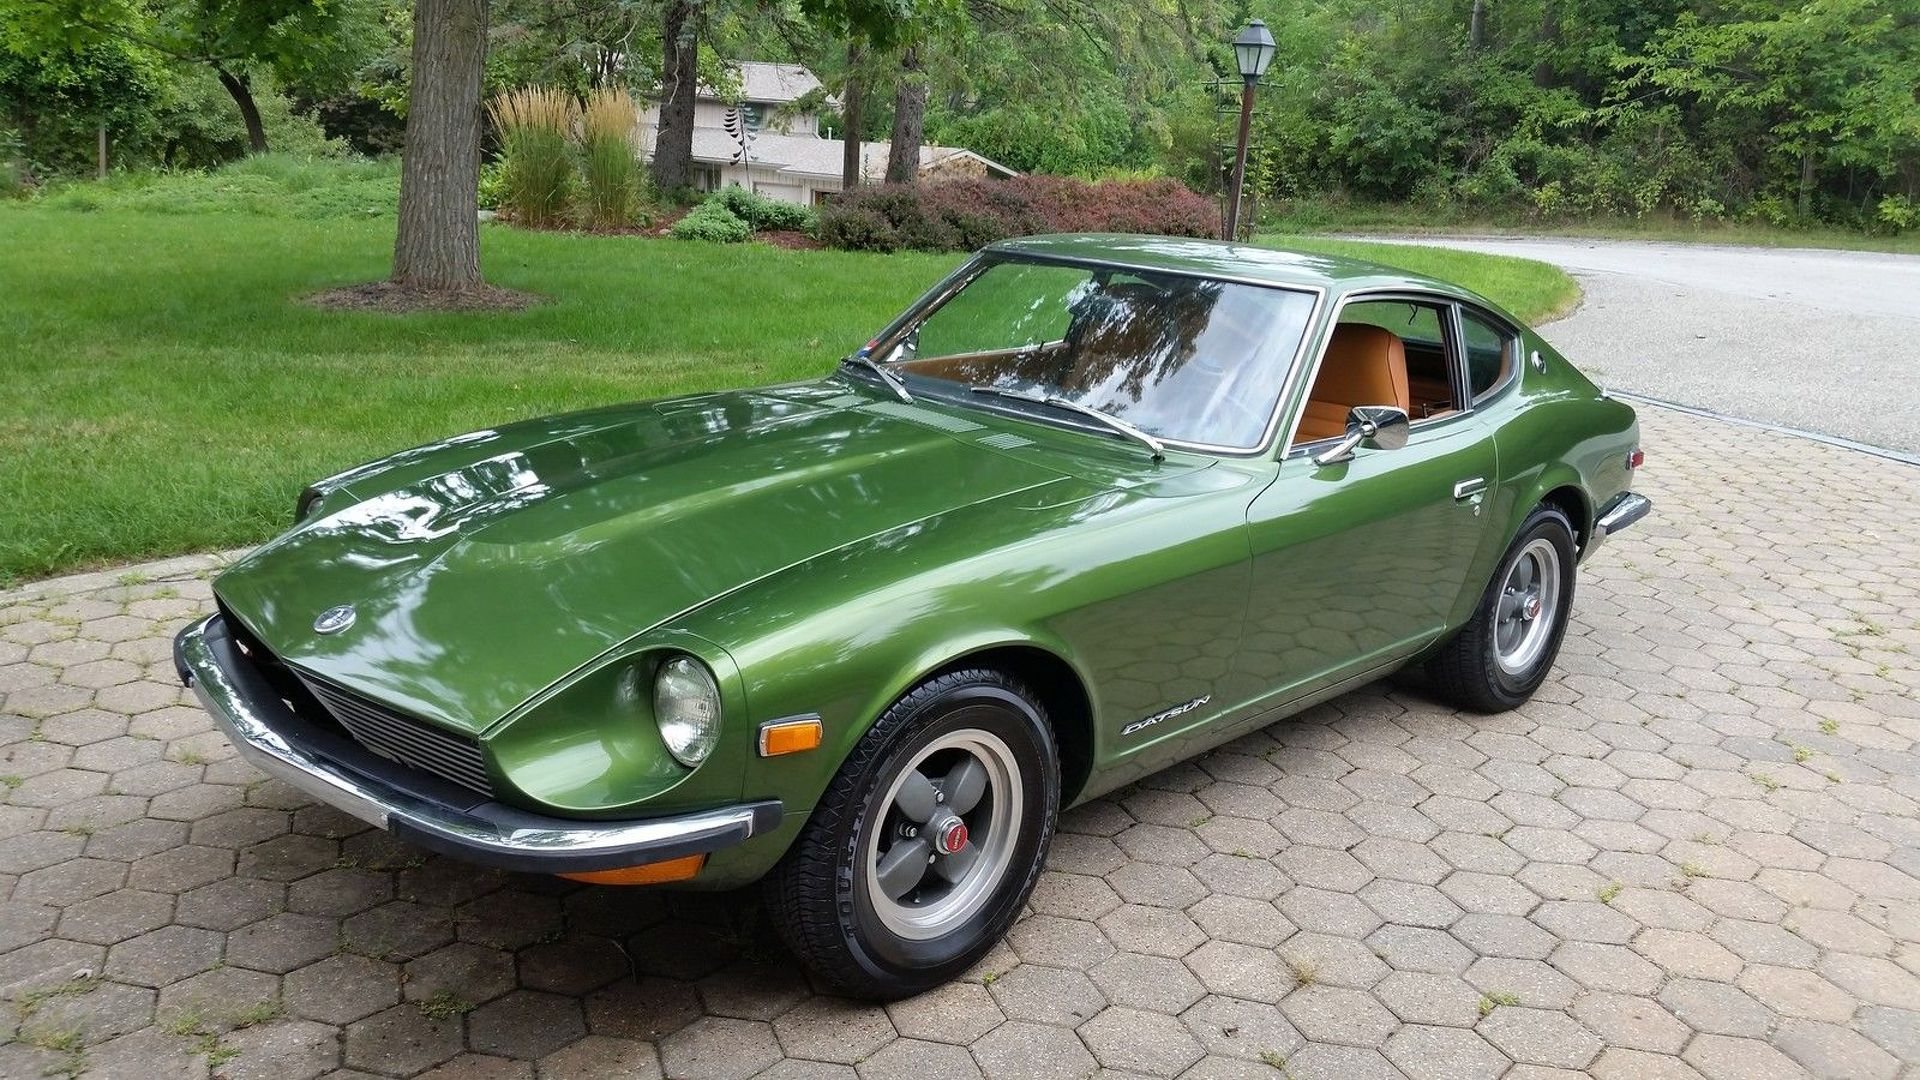 For Sale: Immaculate 1973 Datsun 240Z In The USA